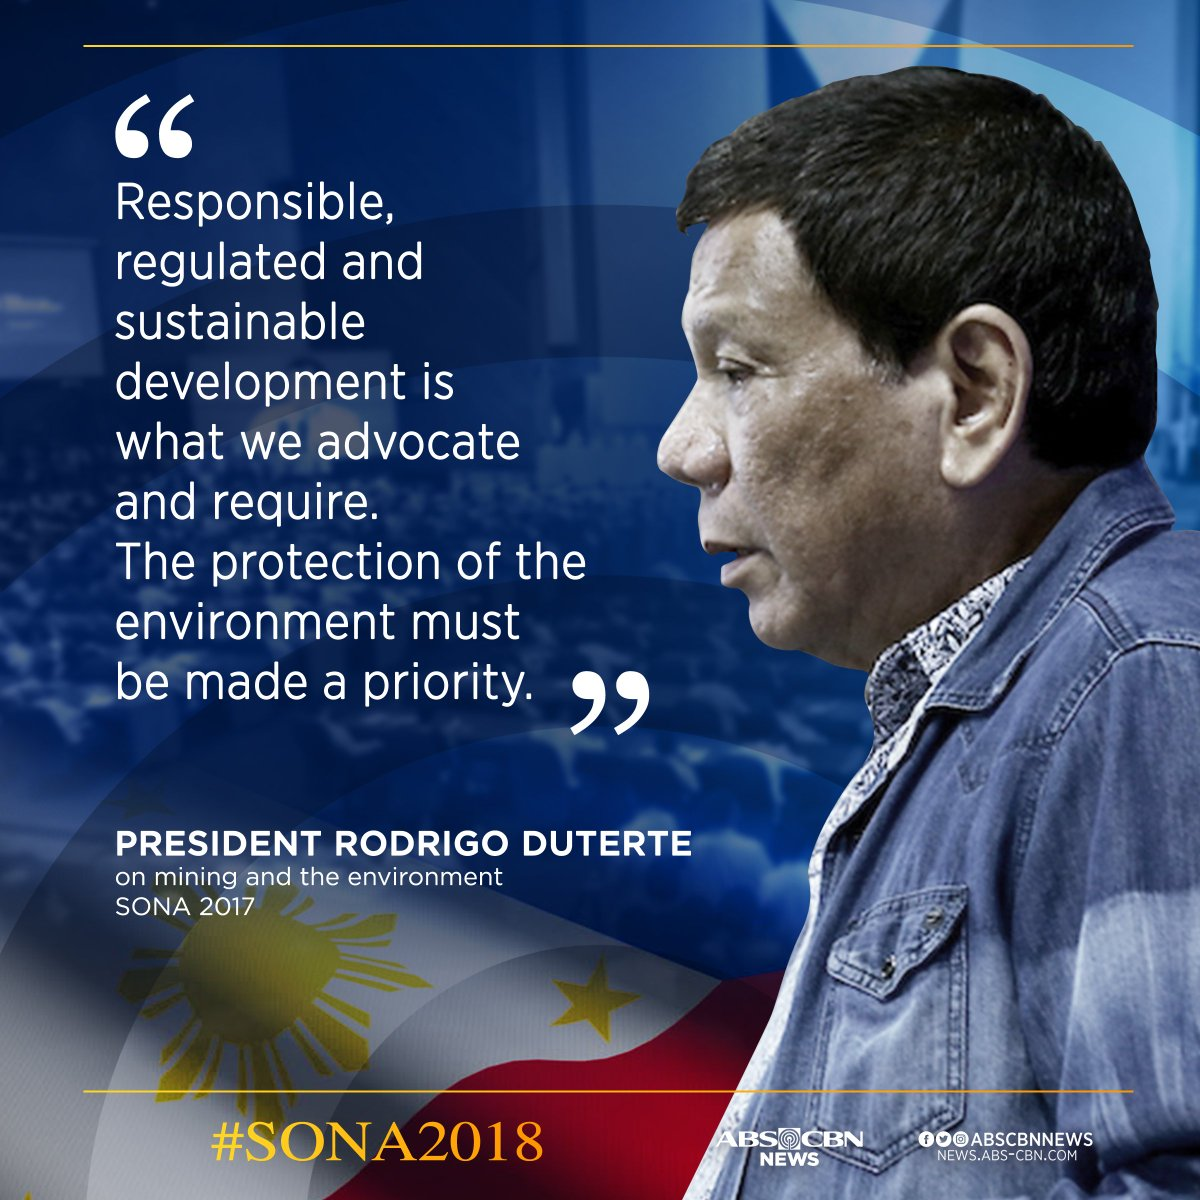 For #SONA2018, what do you expect to hear from the President regarding mining and the environment? https://t.co/tbm55zfwU8